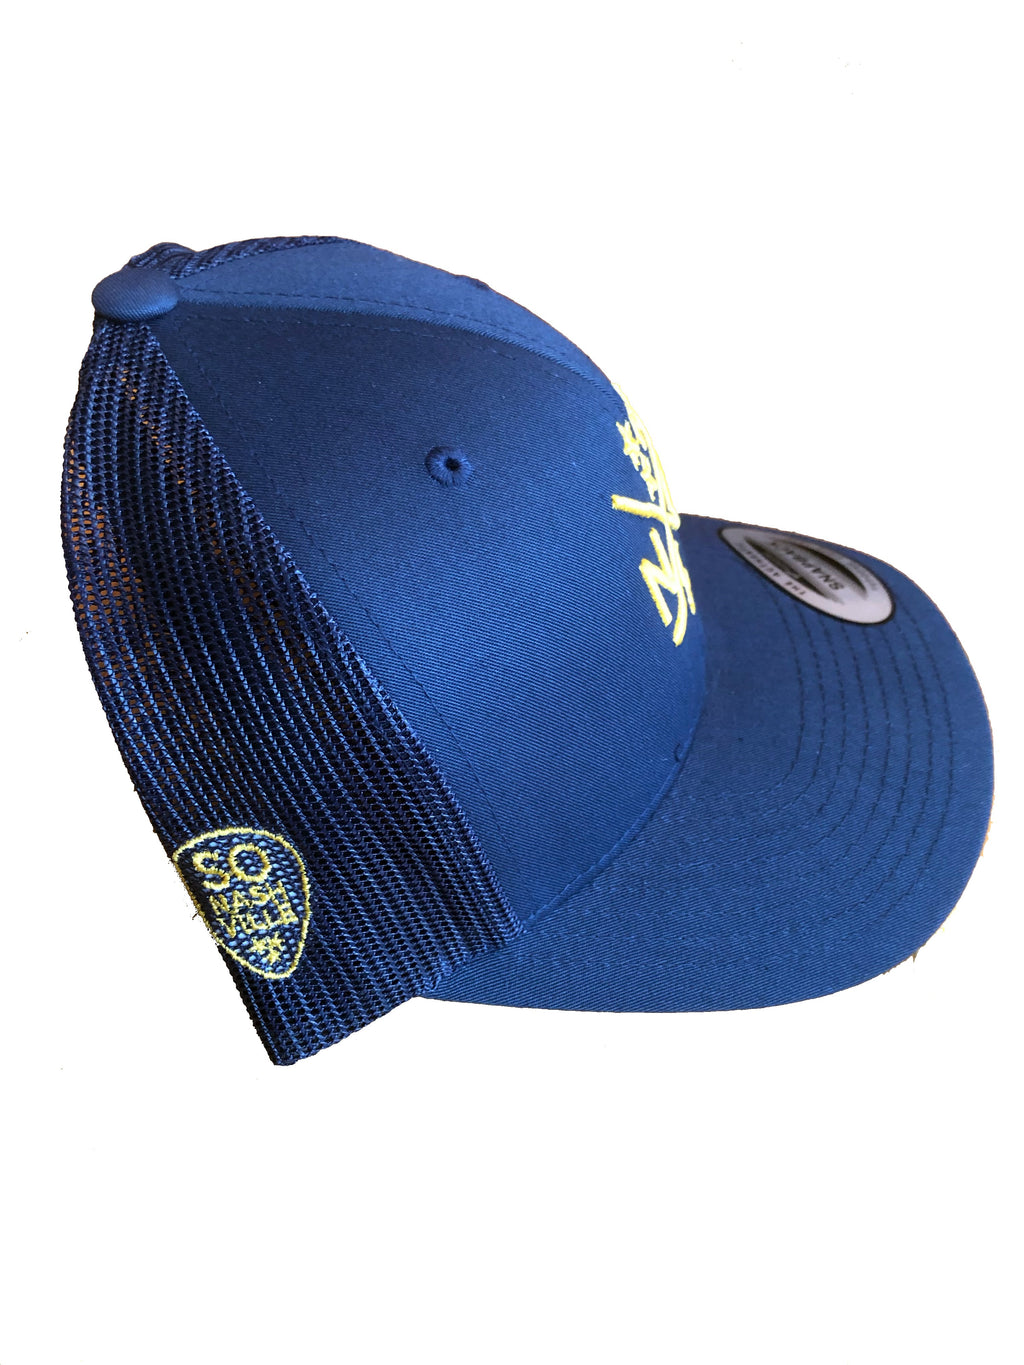 NSH X Hockey Sticks Hat Snapback (Navy/Navy)